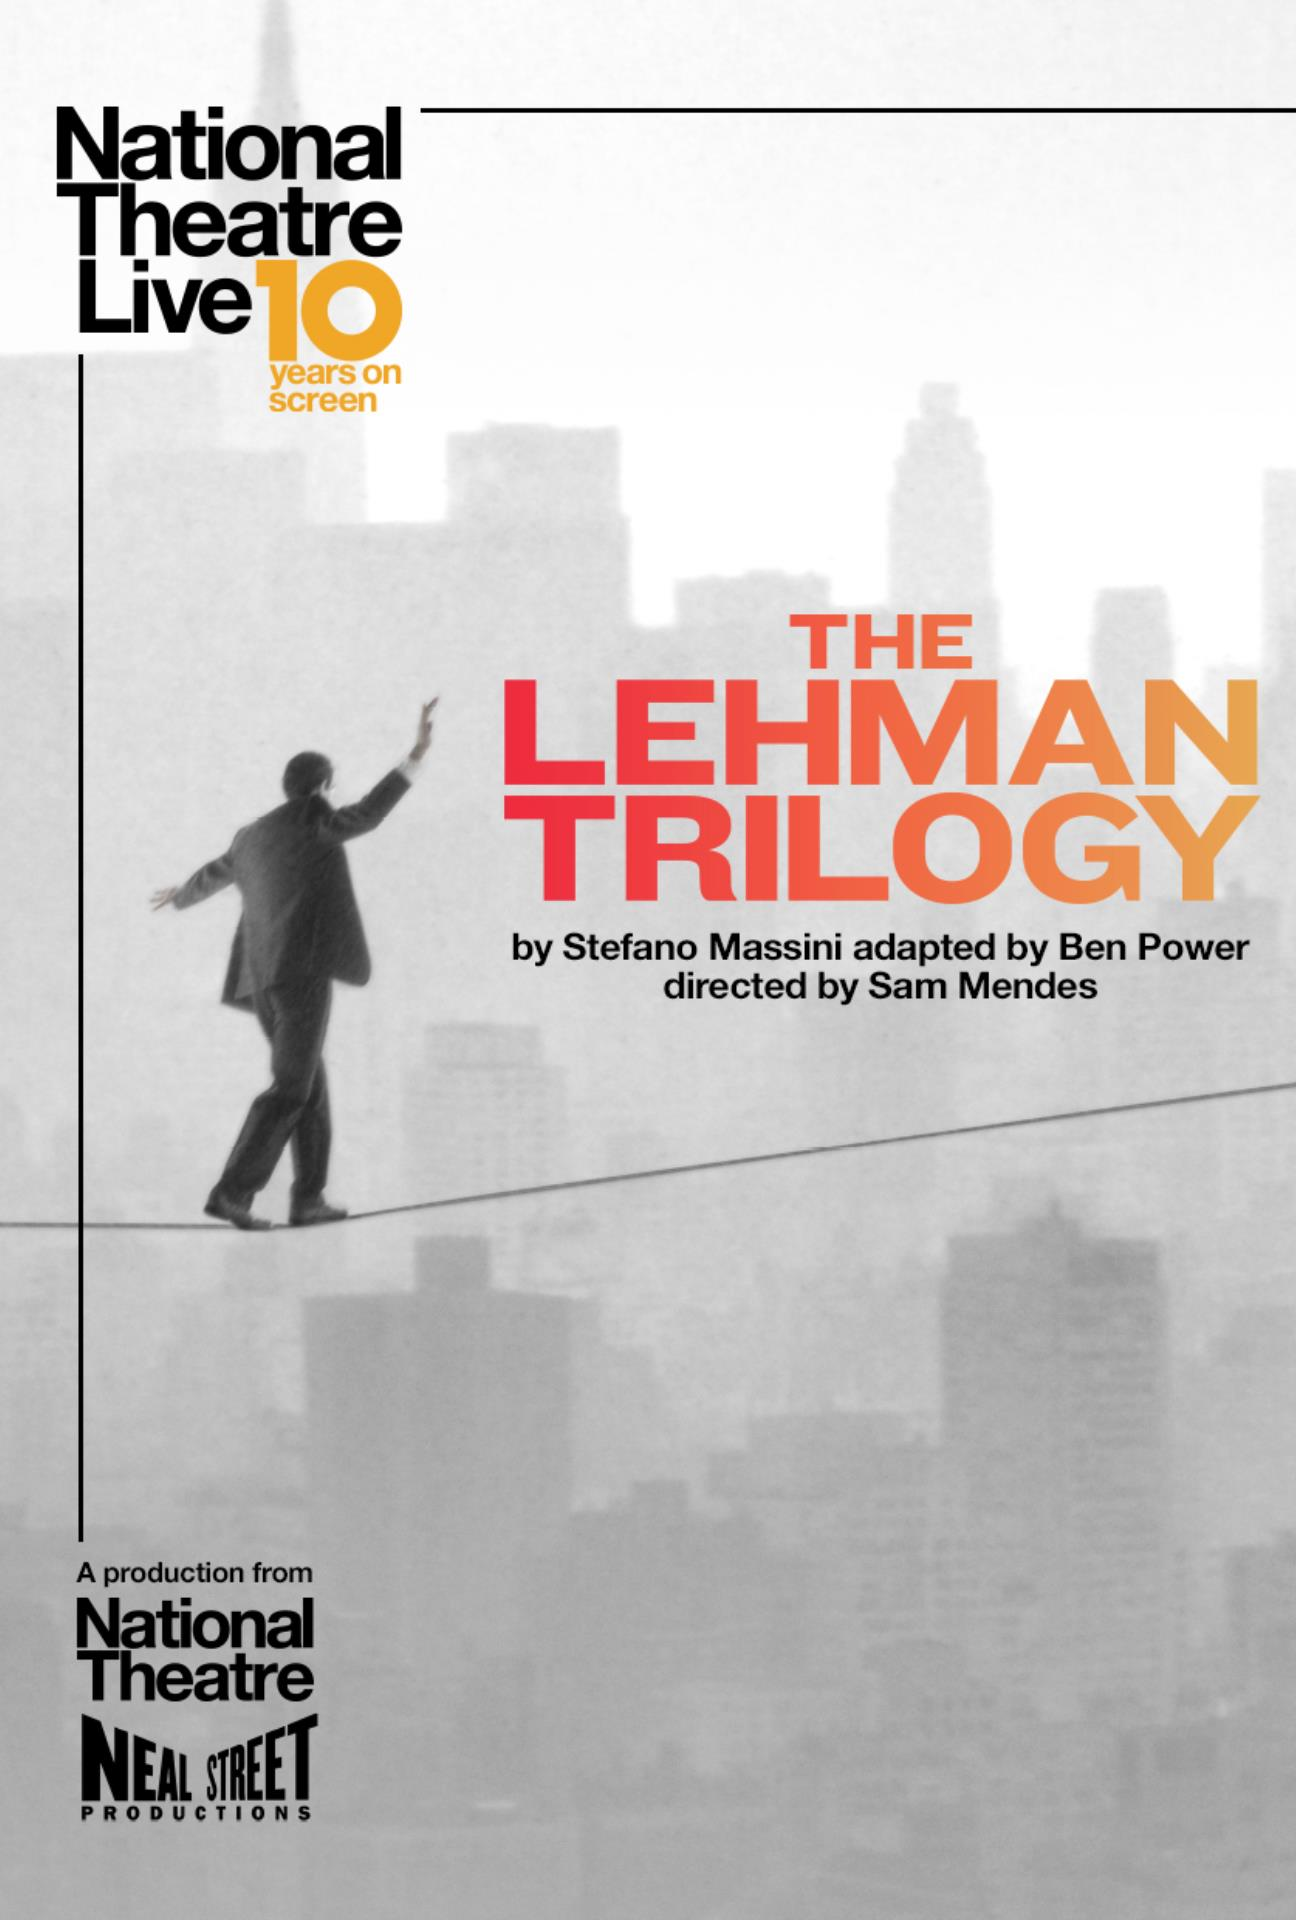 The Lehman Trilogy (National Theatre LIVE) - an artsLIVE Screening banner image